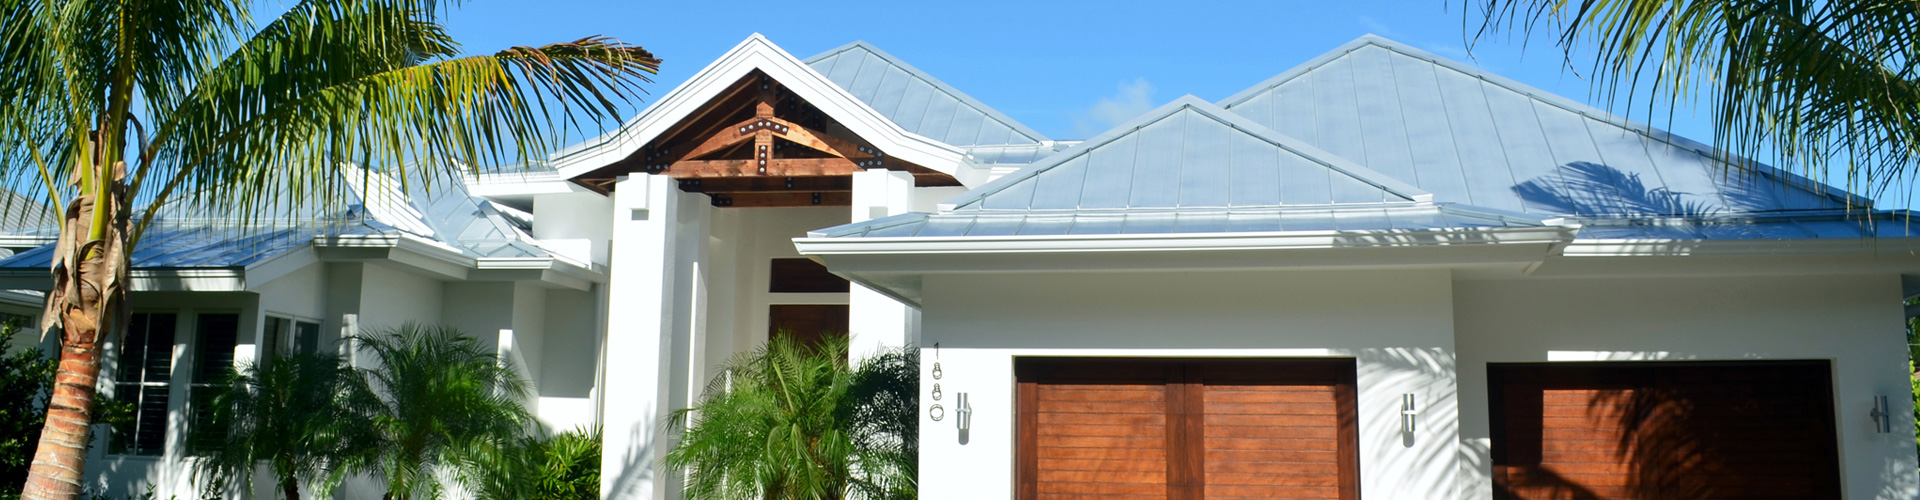 Metal Roofing Installation in Naples, Florida